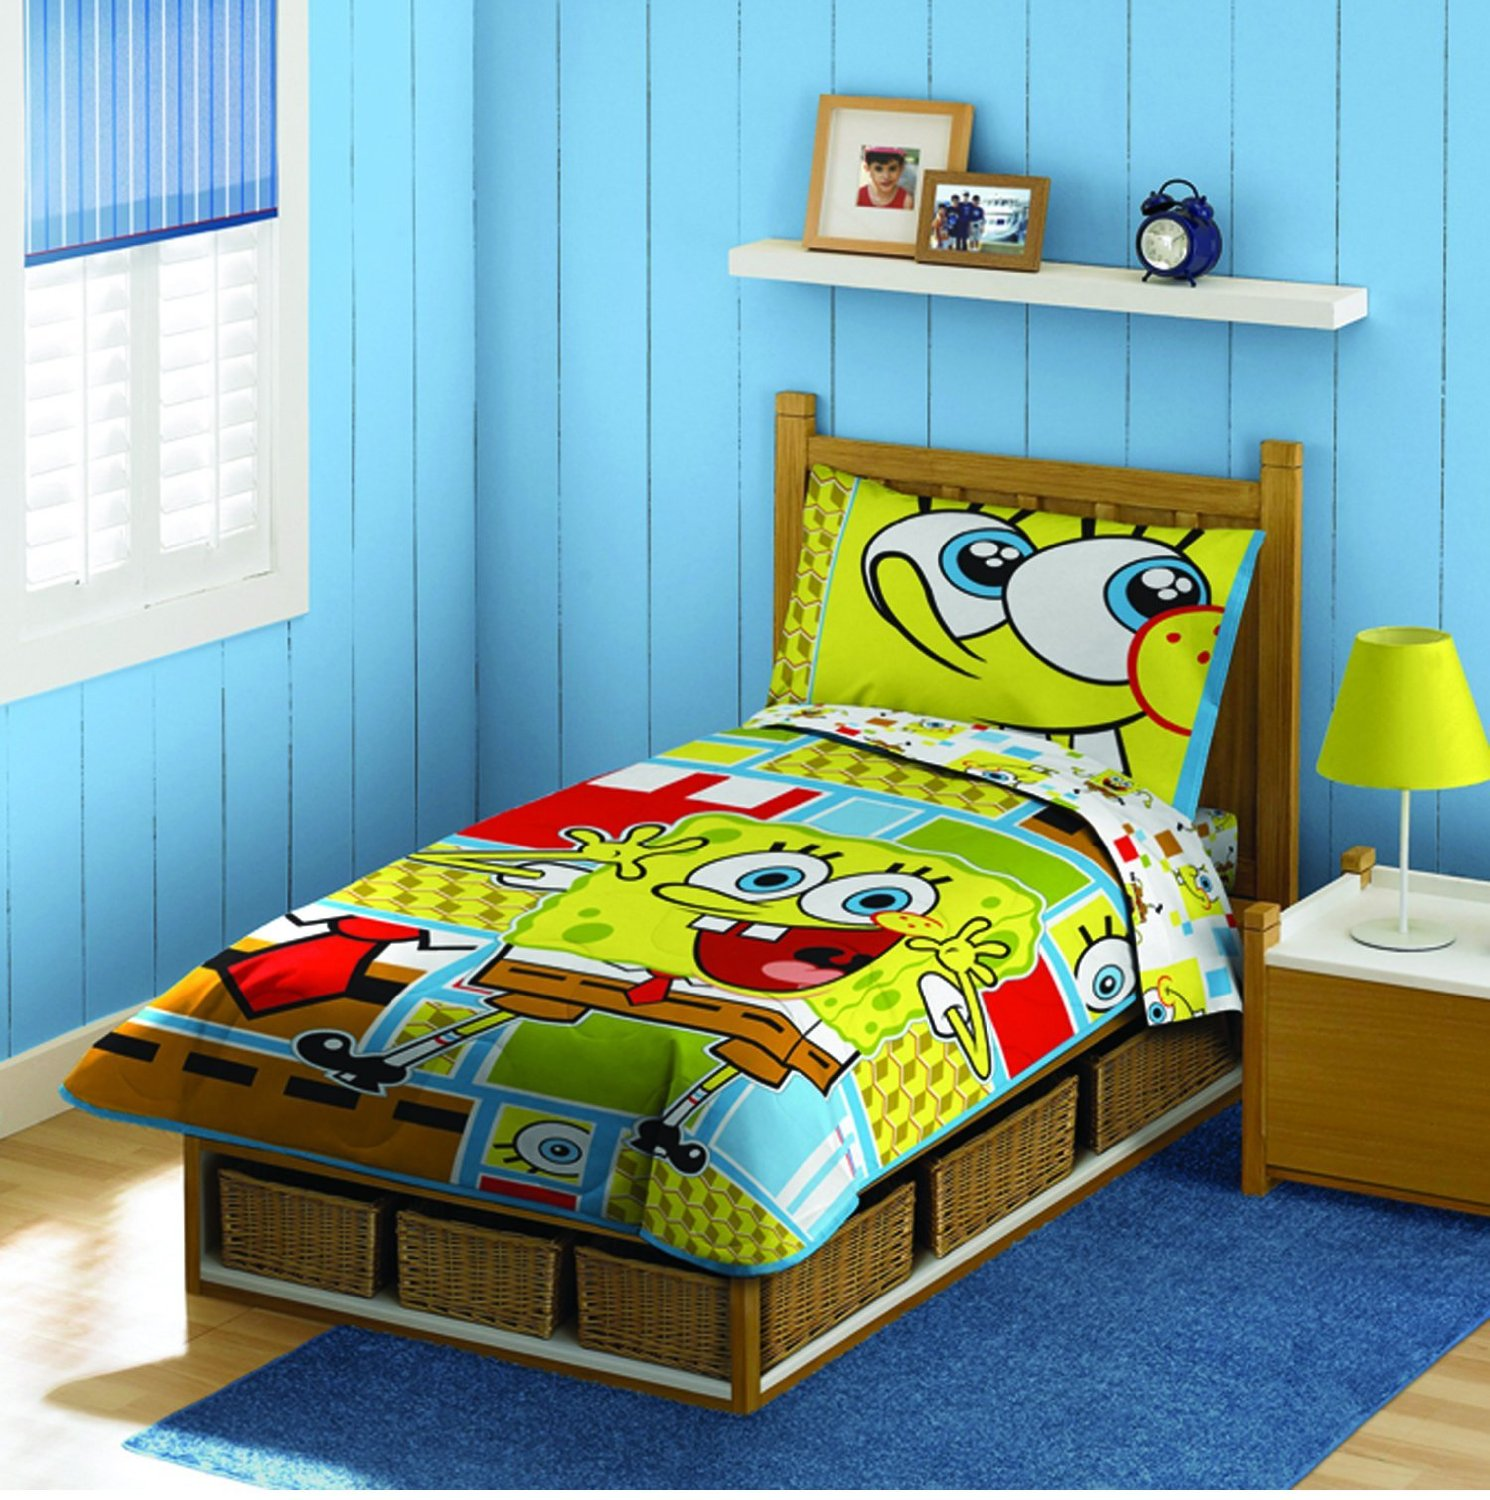 for Boys red and blue bedroom ideas